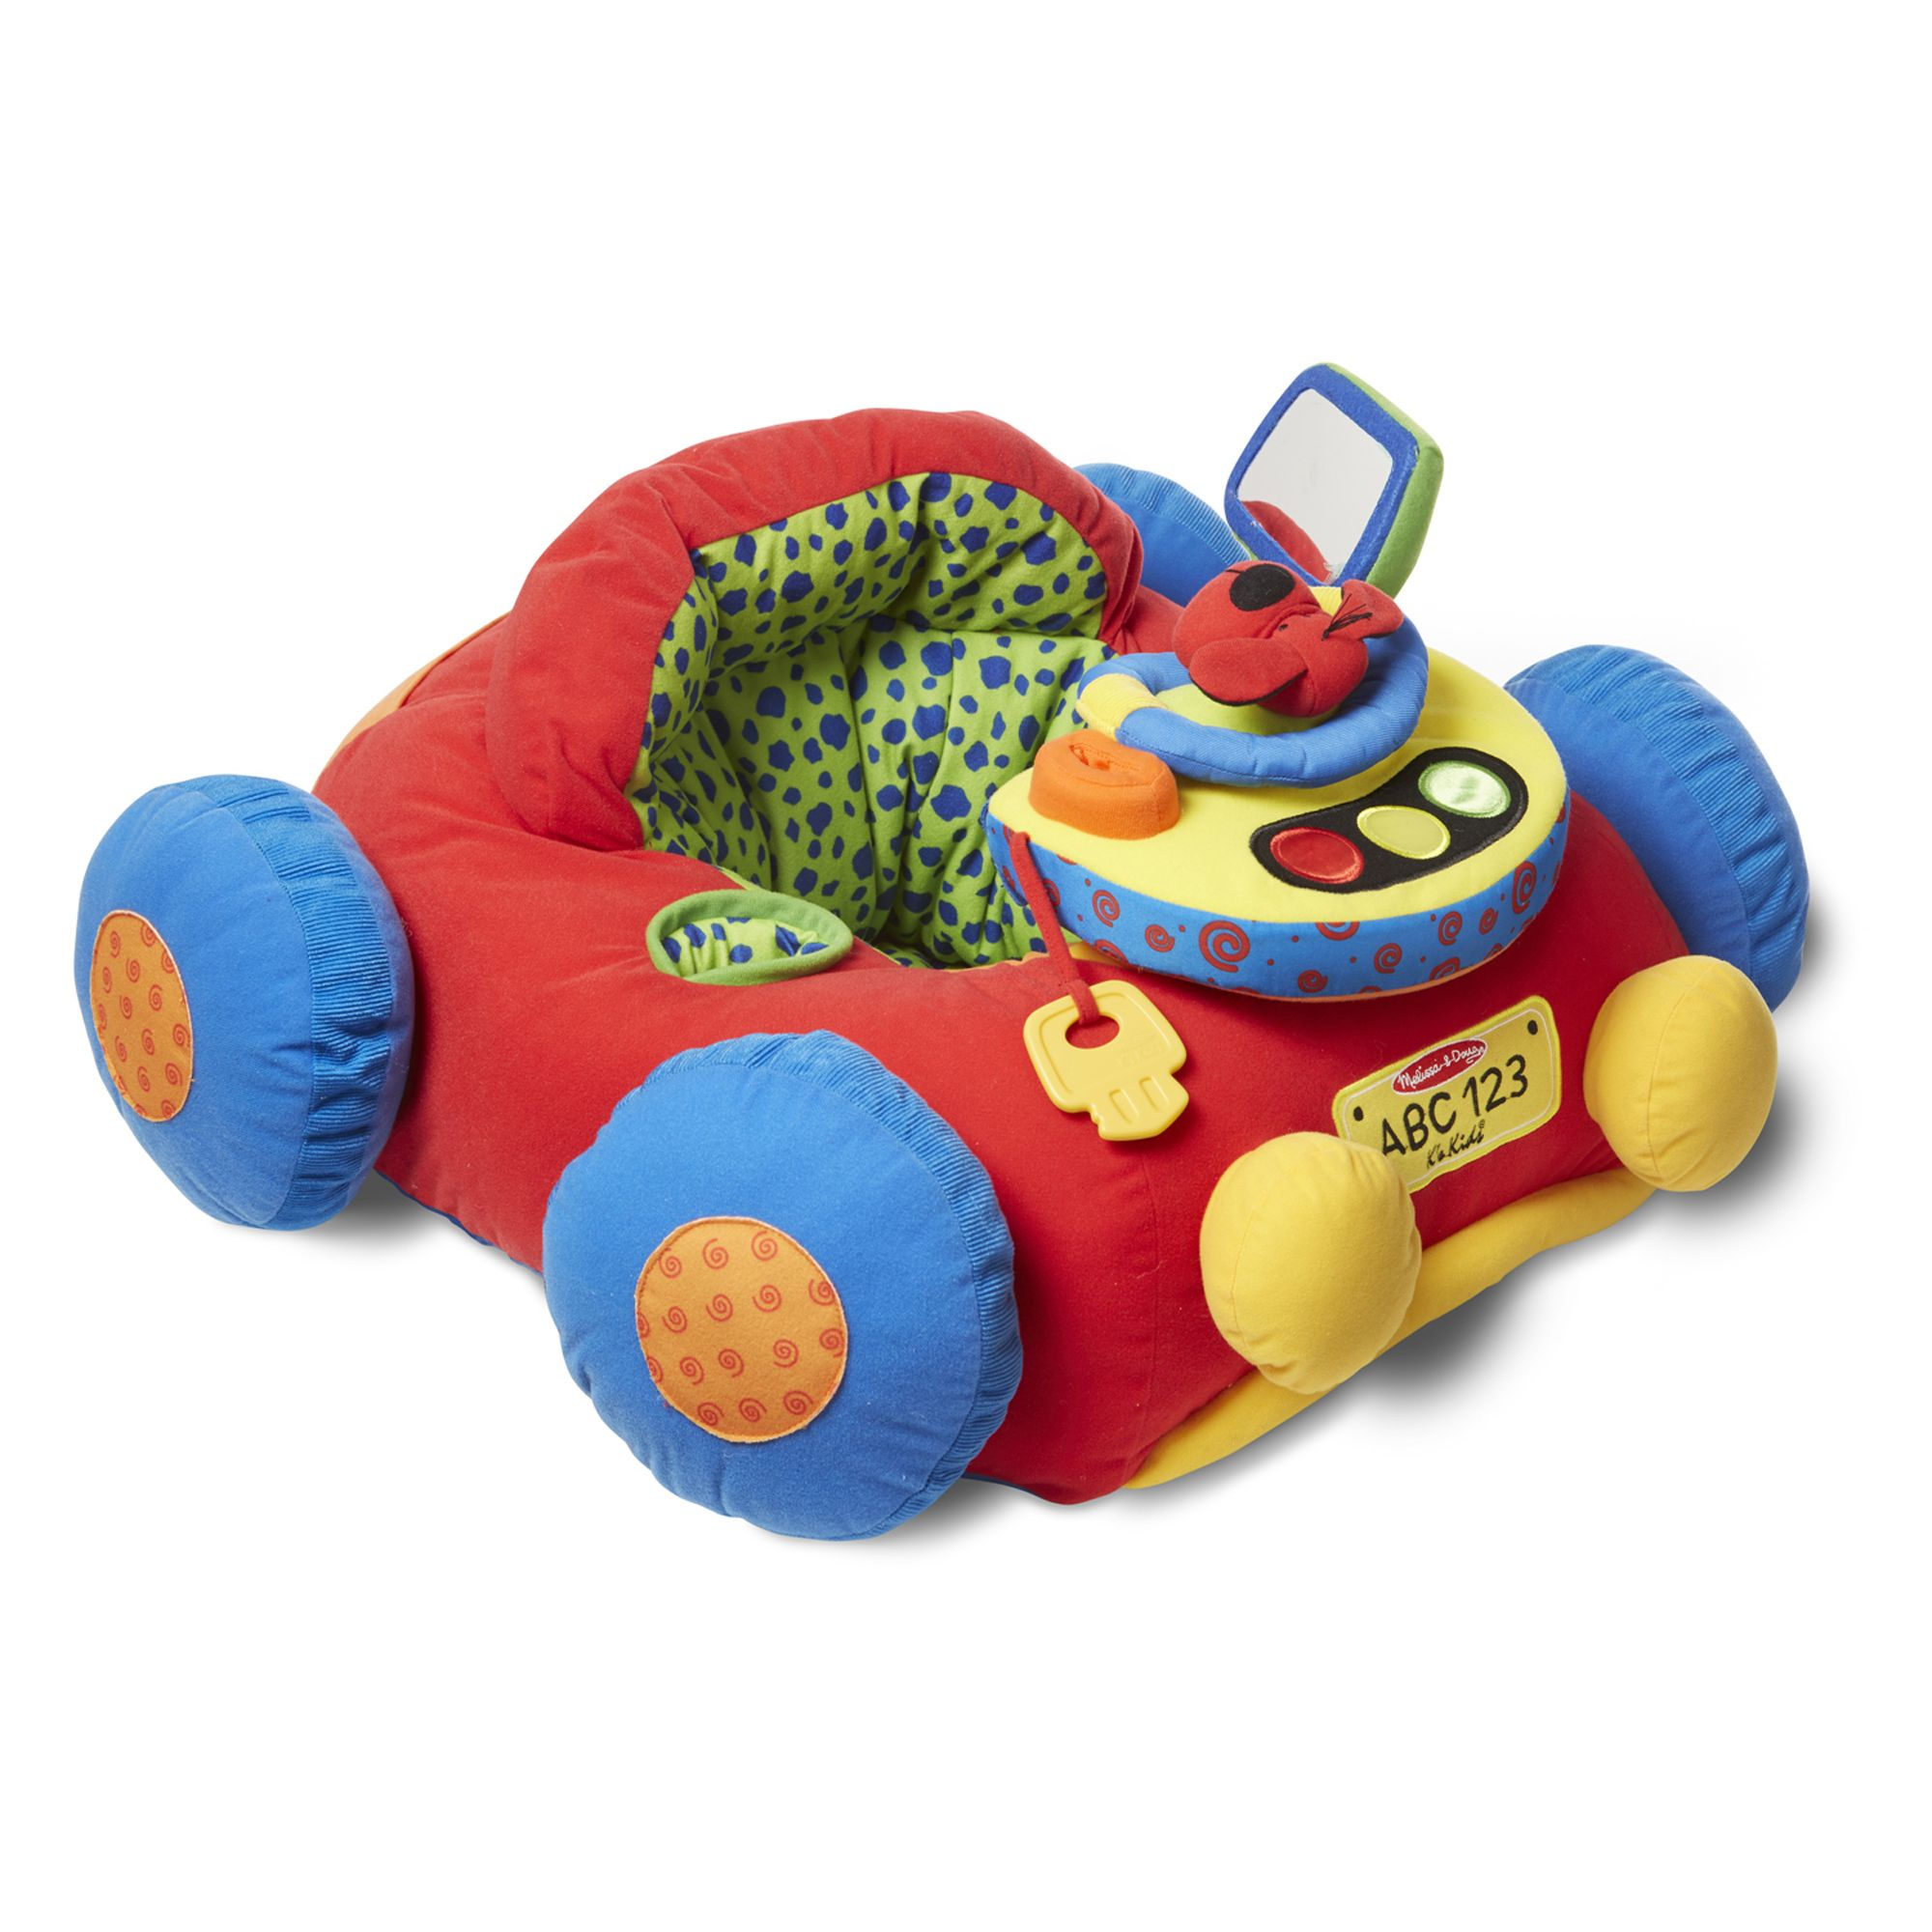 Beep-Beep & Play Activity Toy 9220